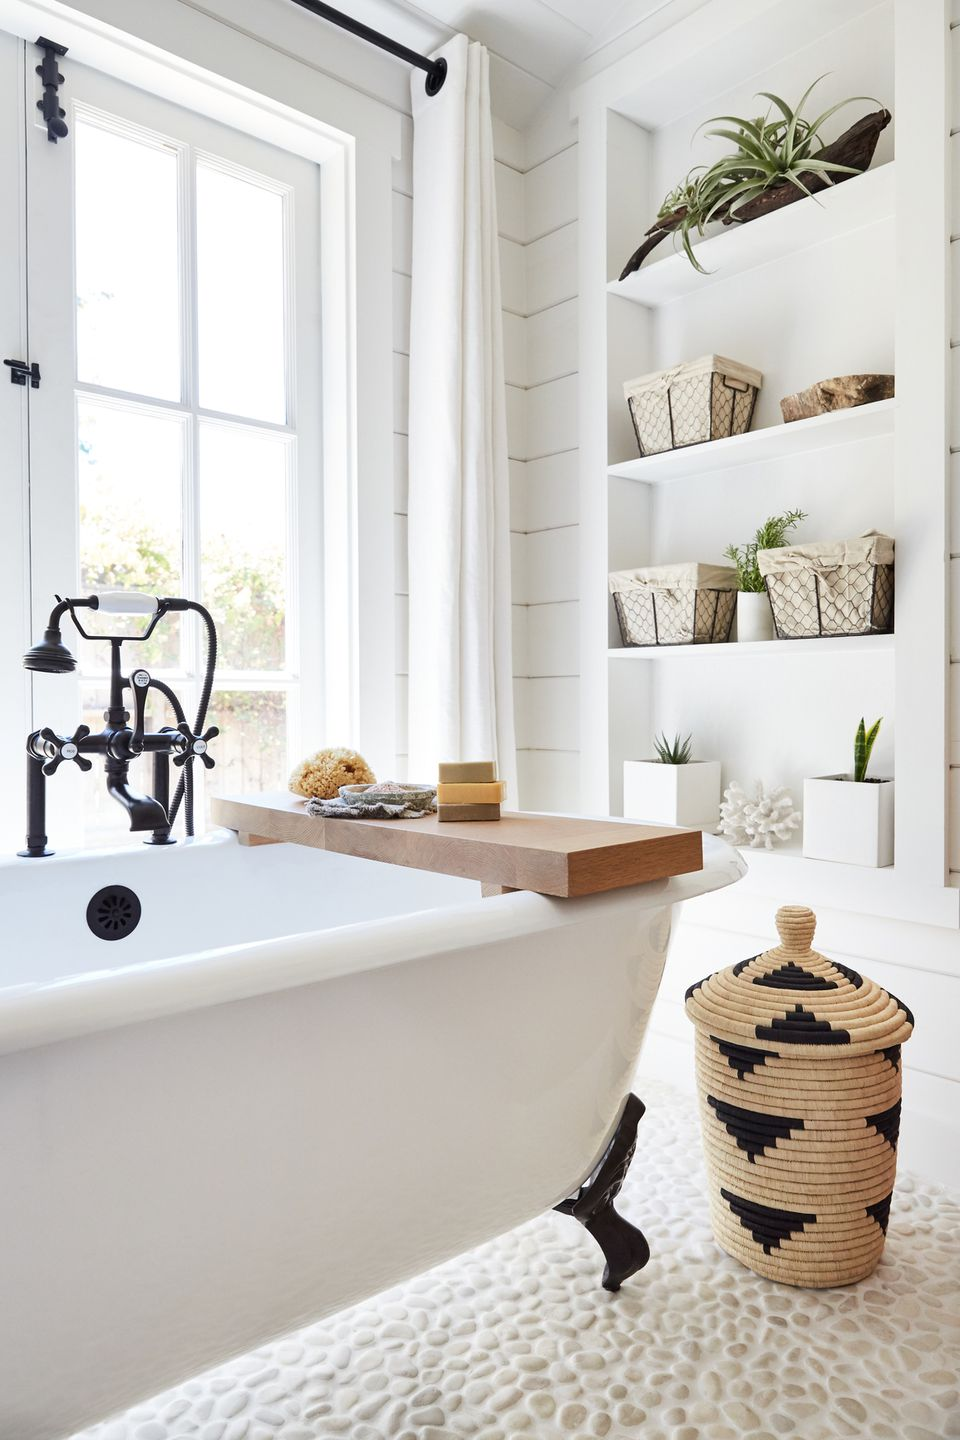 What to Store in Your Bathroom (And What Not To)